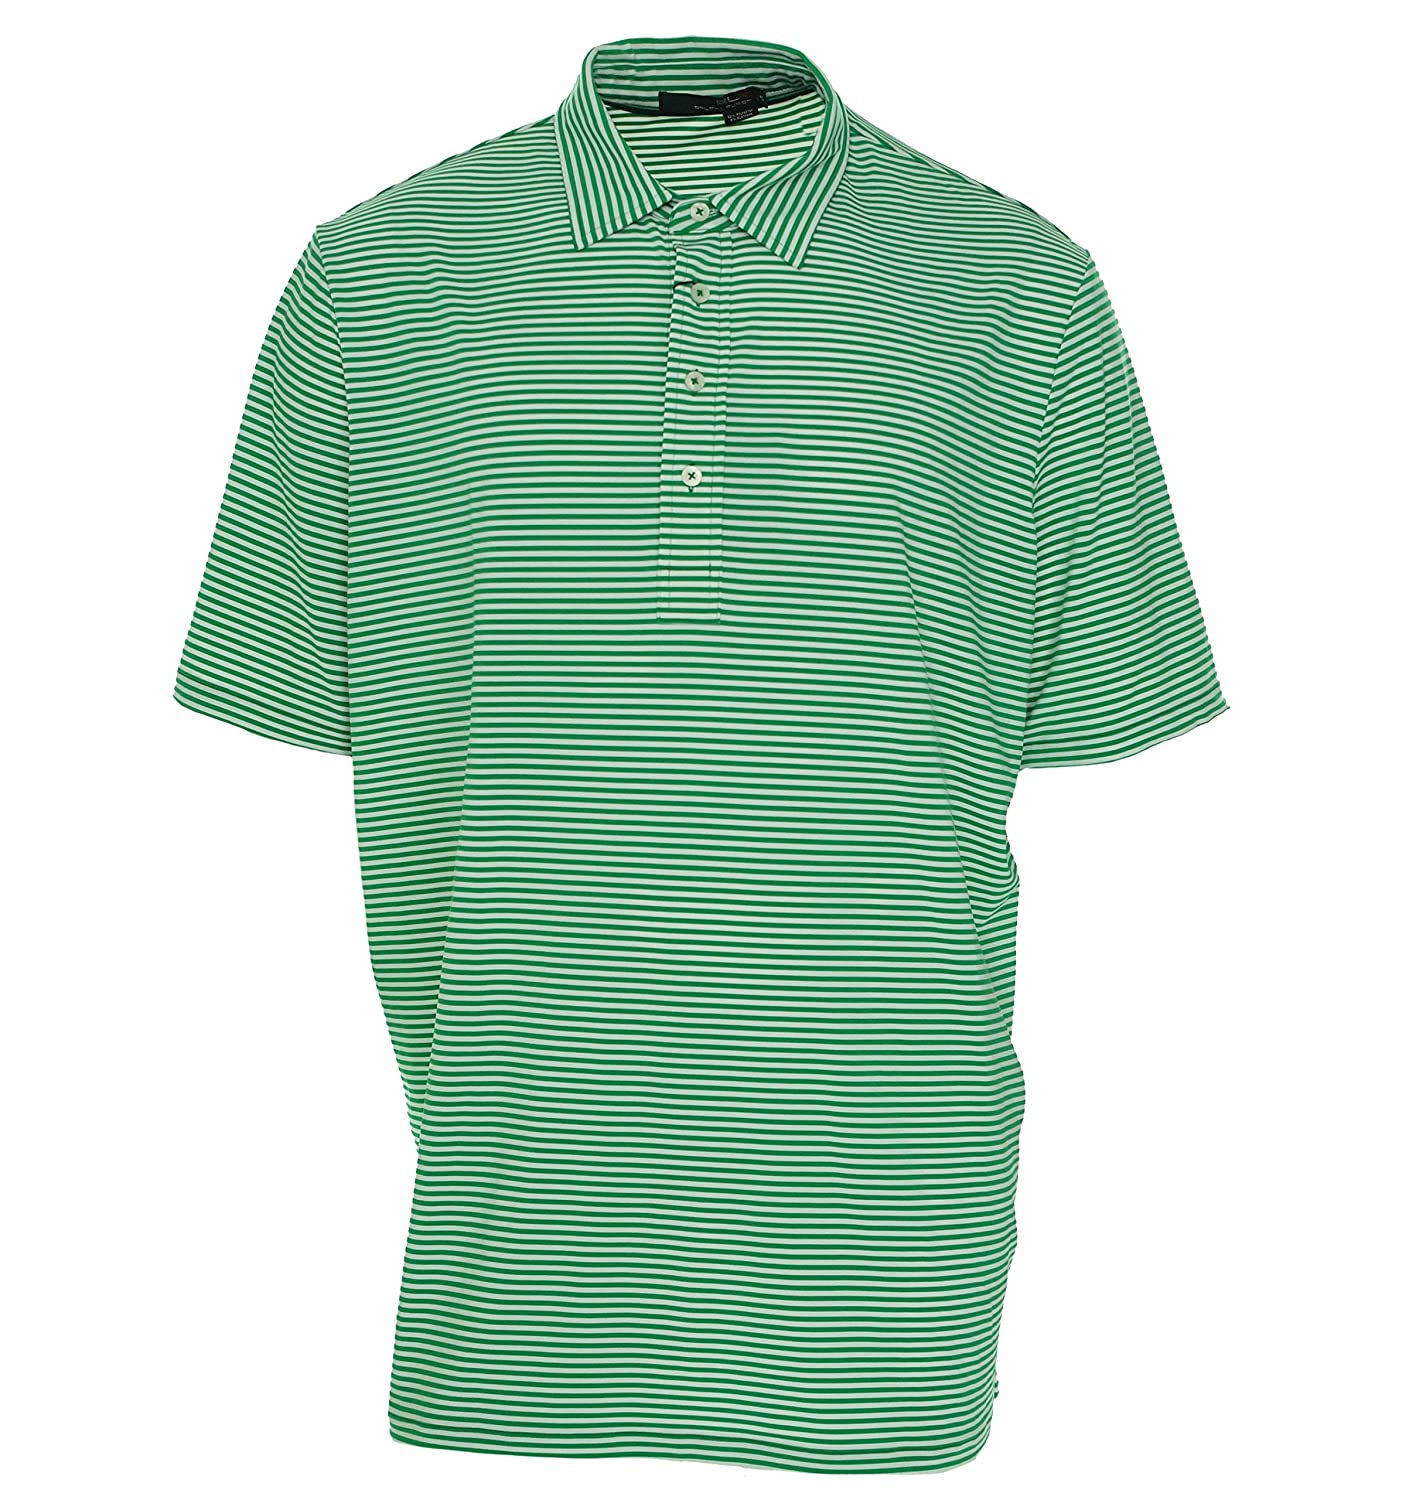 Rlx Golf Active Fit Striped Pique Polo Shirt Xx Large Green At